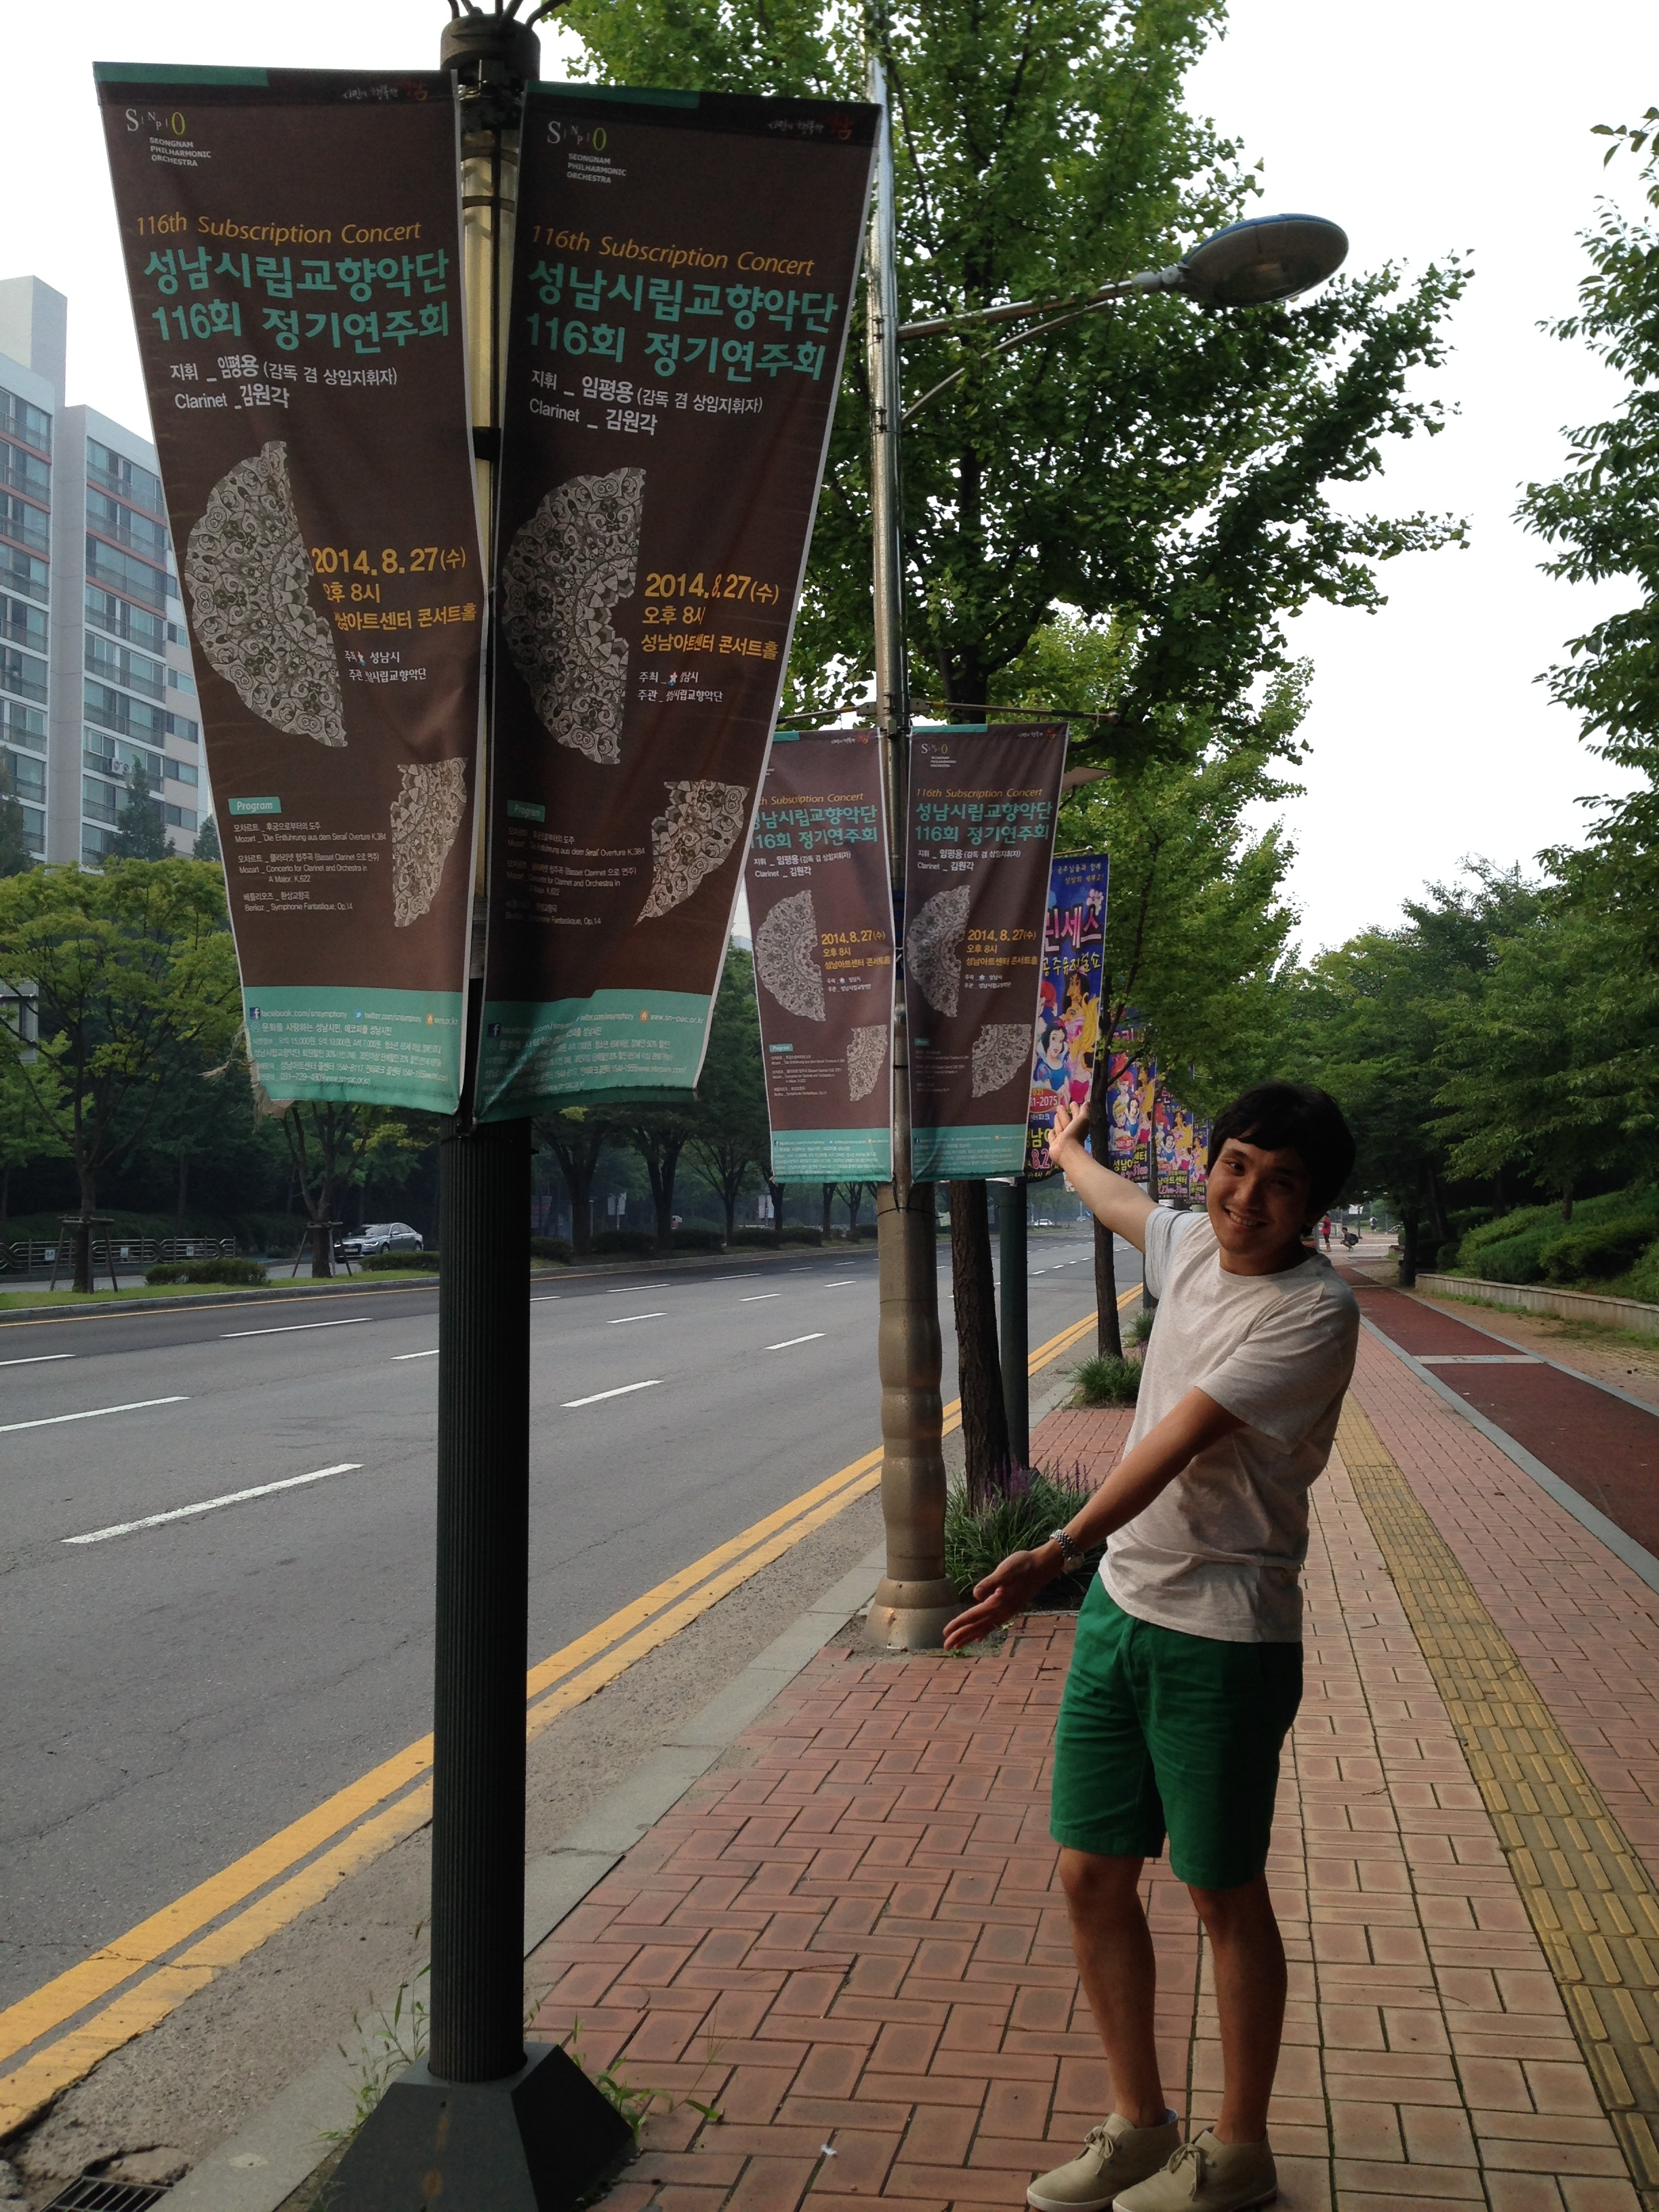 The street in front of Seungnam Arts Center had full of these banners